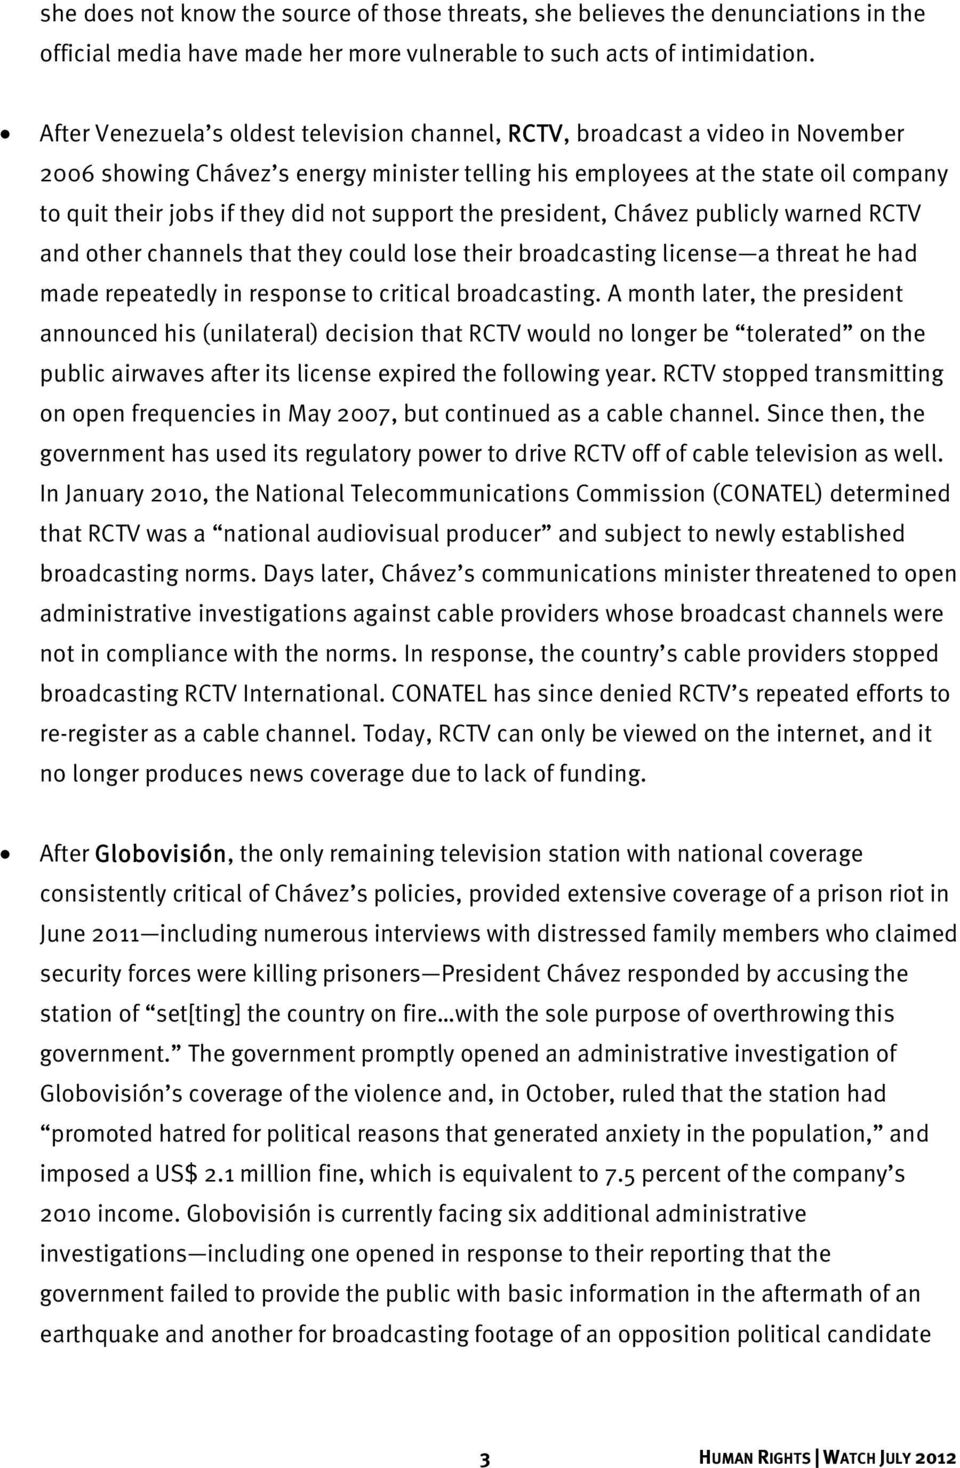 not support the president, Chávez publicly warned RCTV and other channels that they could lose their broadcasting license a threat he had made repeatedly in response to critical broadcasting.